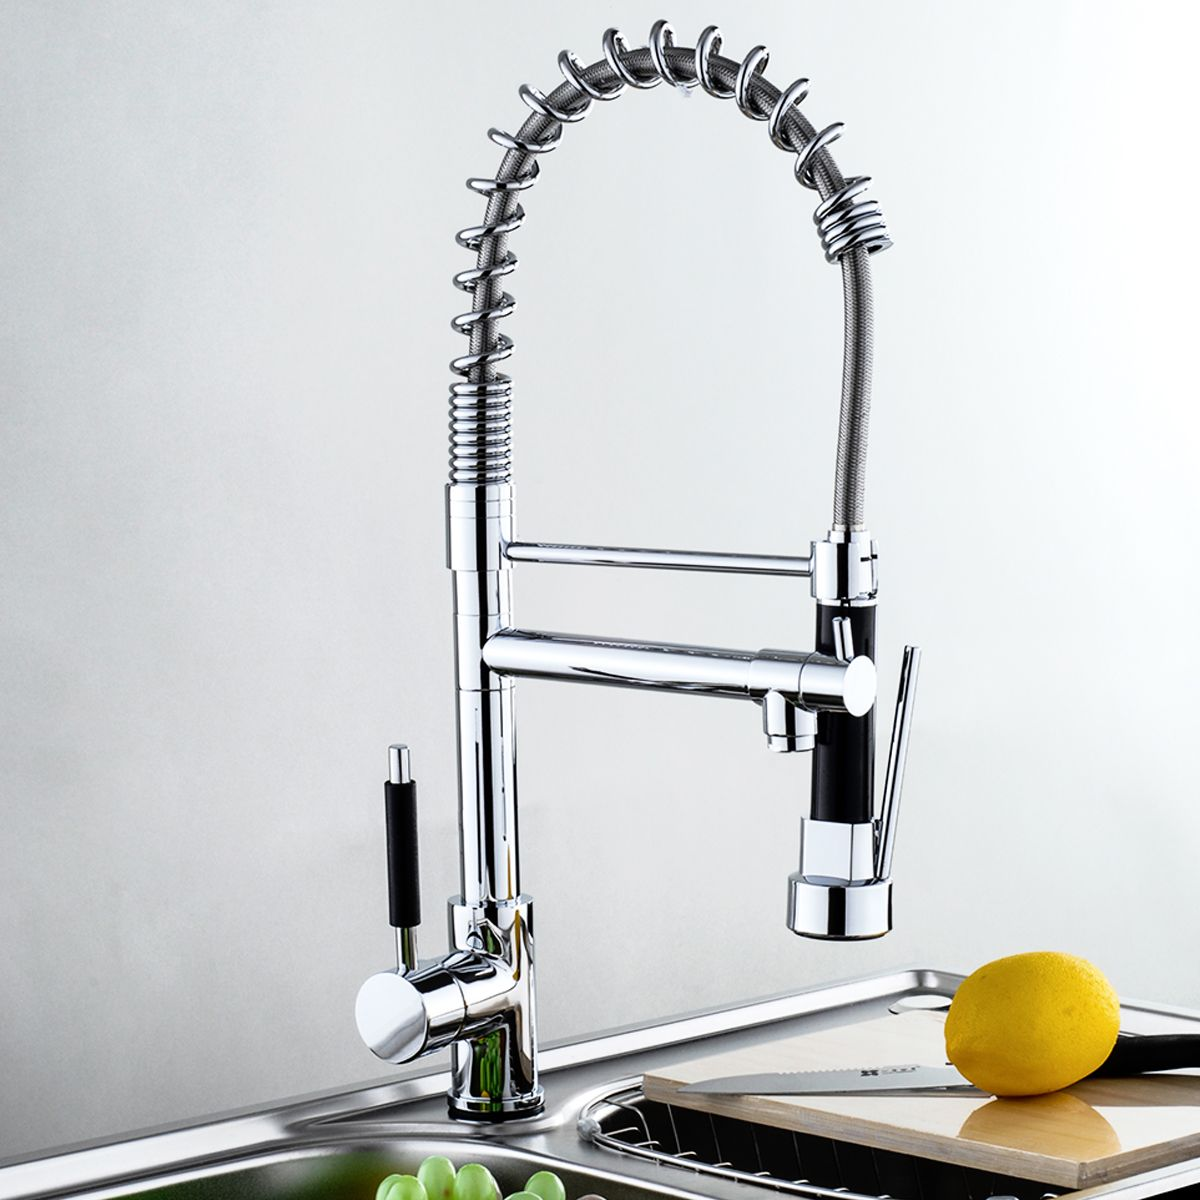 Modern Kitchen Sink Faucets swivel spout chrome brass kitchen faucet dual sprayer vessel sink